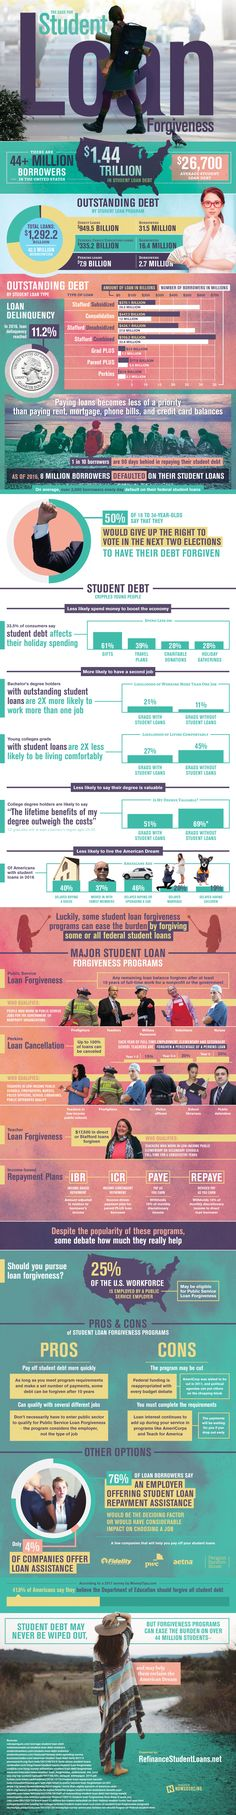 According to an article titled The Case for Student Loan Forgiveness, student loan debt is one of the highest debt categories in the U.S.